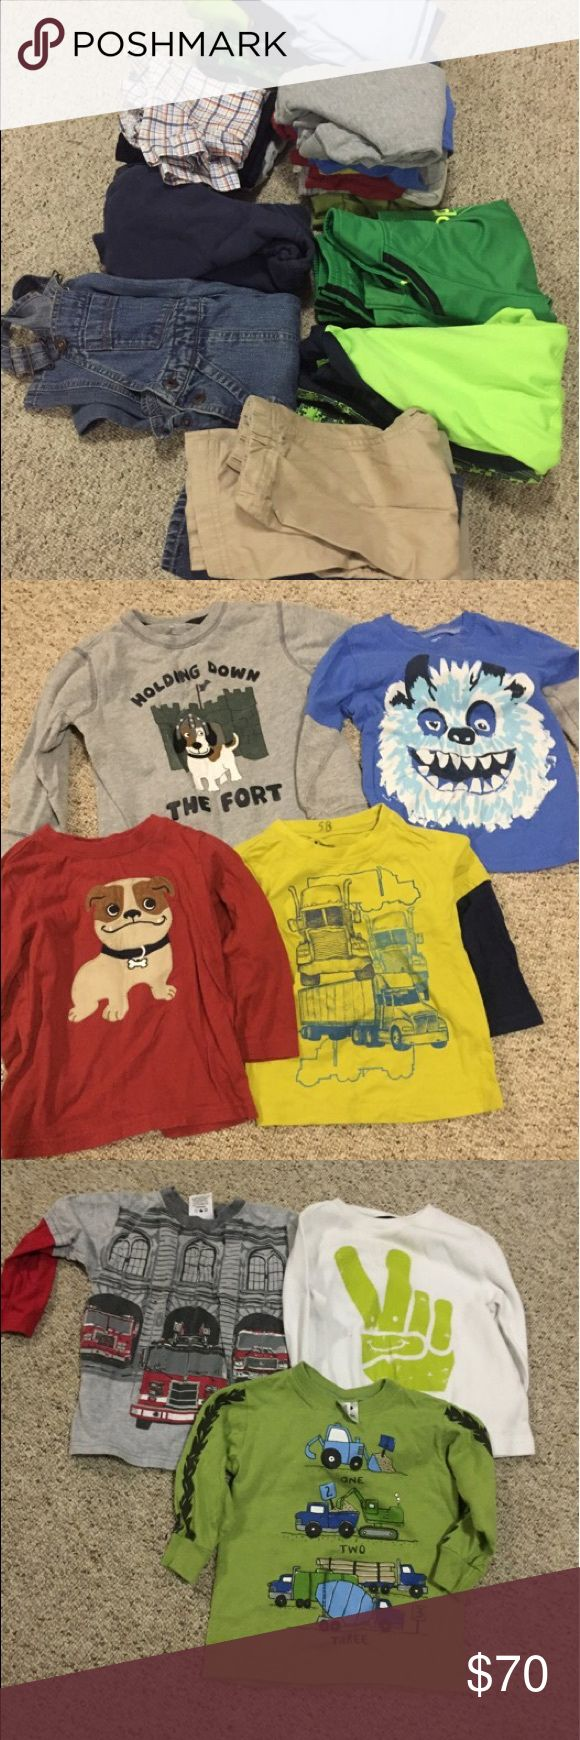 2T Boys Lot Excellent pre loved condition. Well cared for 2T  boys lot includes a pair of overalls, zip-up hoodie, 4 pairs of pants, 7 long sleeve shirts, 4 tees, 2 track suits, 4 pajama sets. •Use the offer button. Reasonable offers considered. More photos available, pic stitch wouldn't work well with them. Osh kosh, Nike, adidas, converse for some items Osh Kosh Other